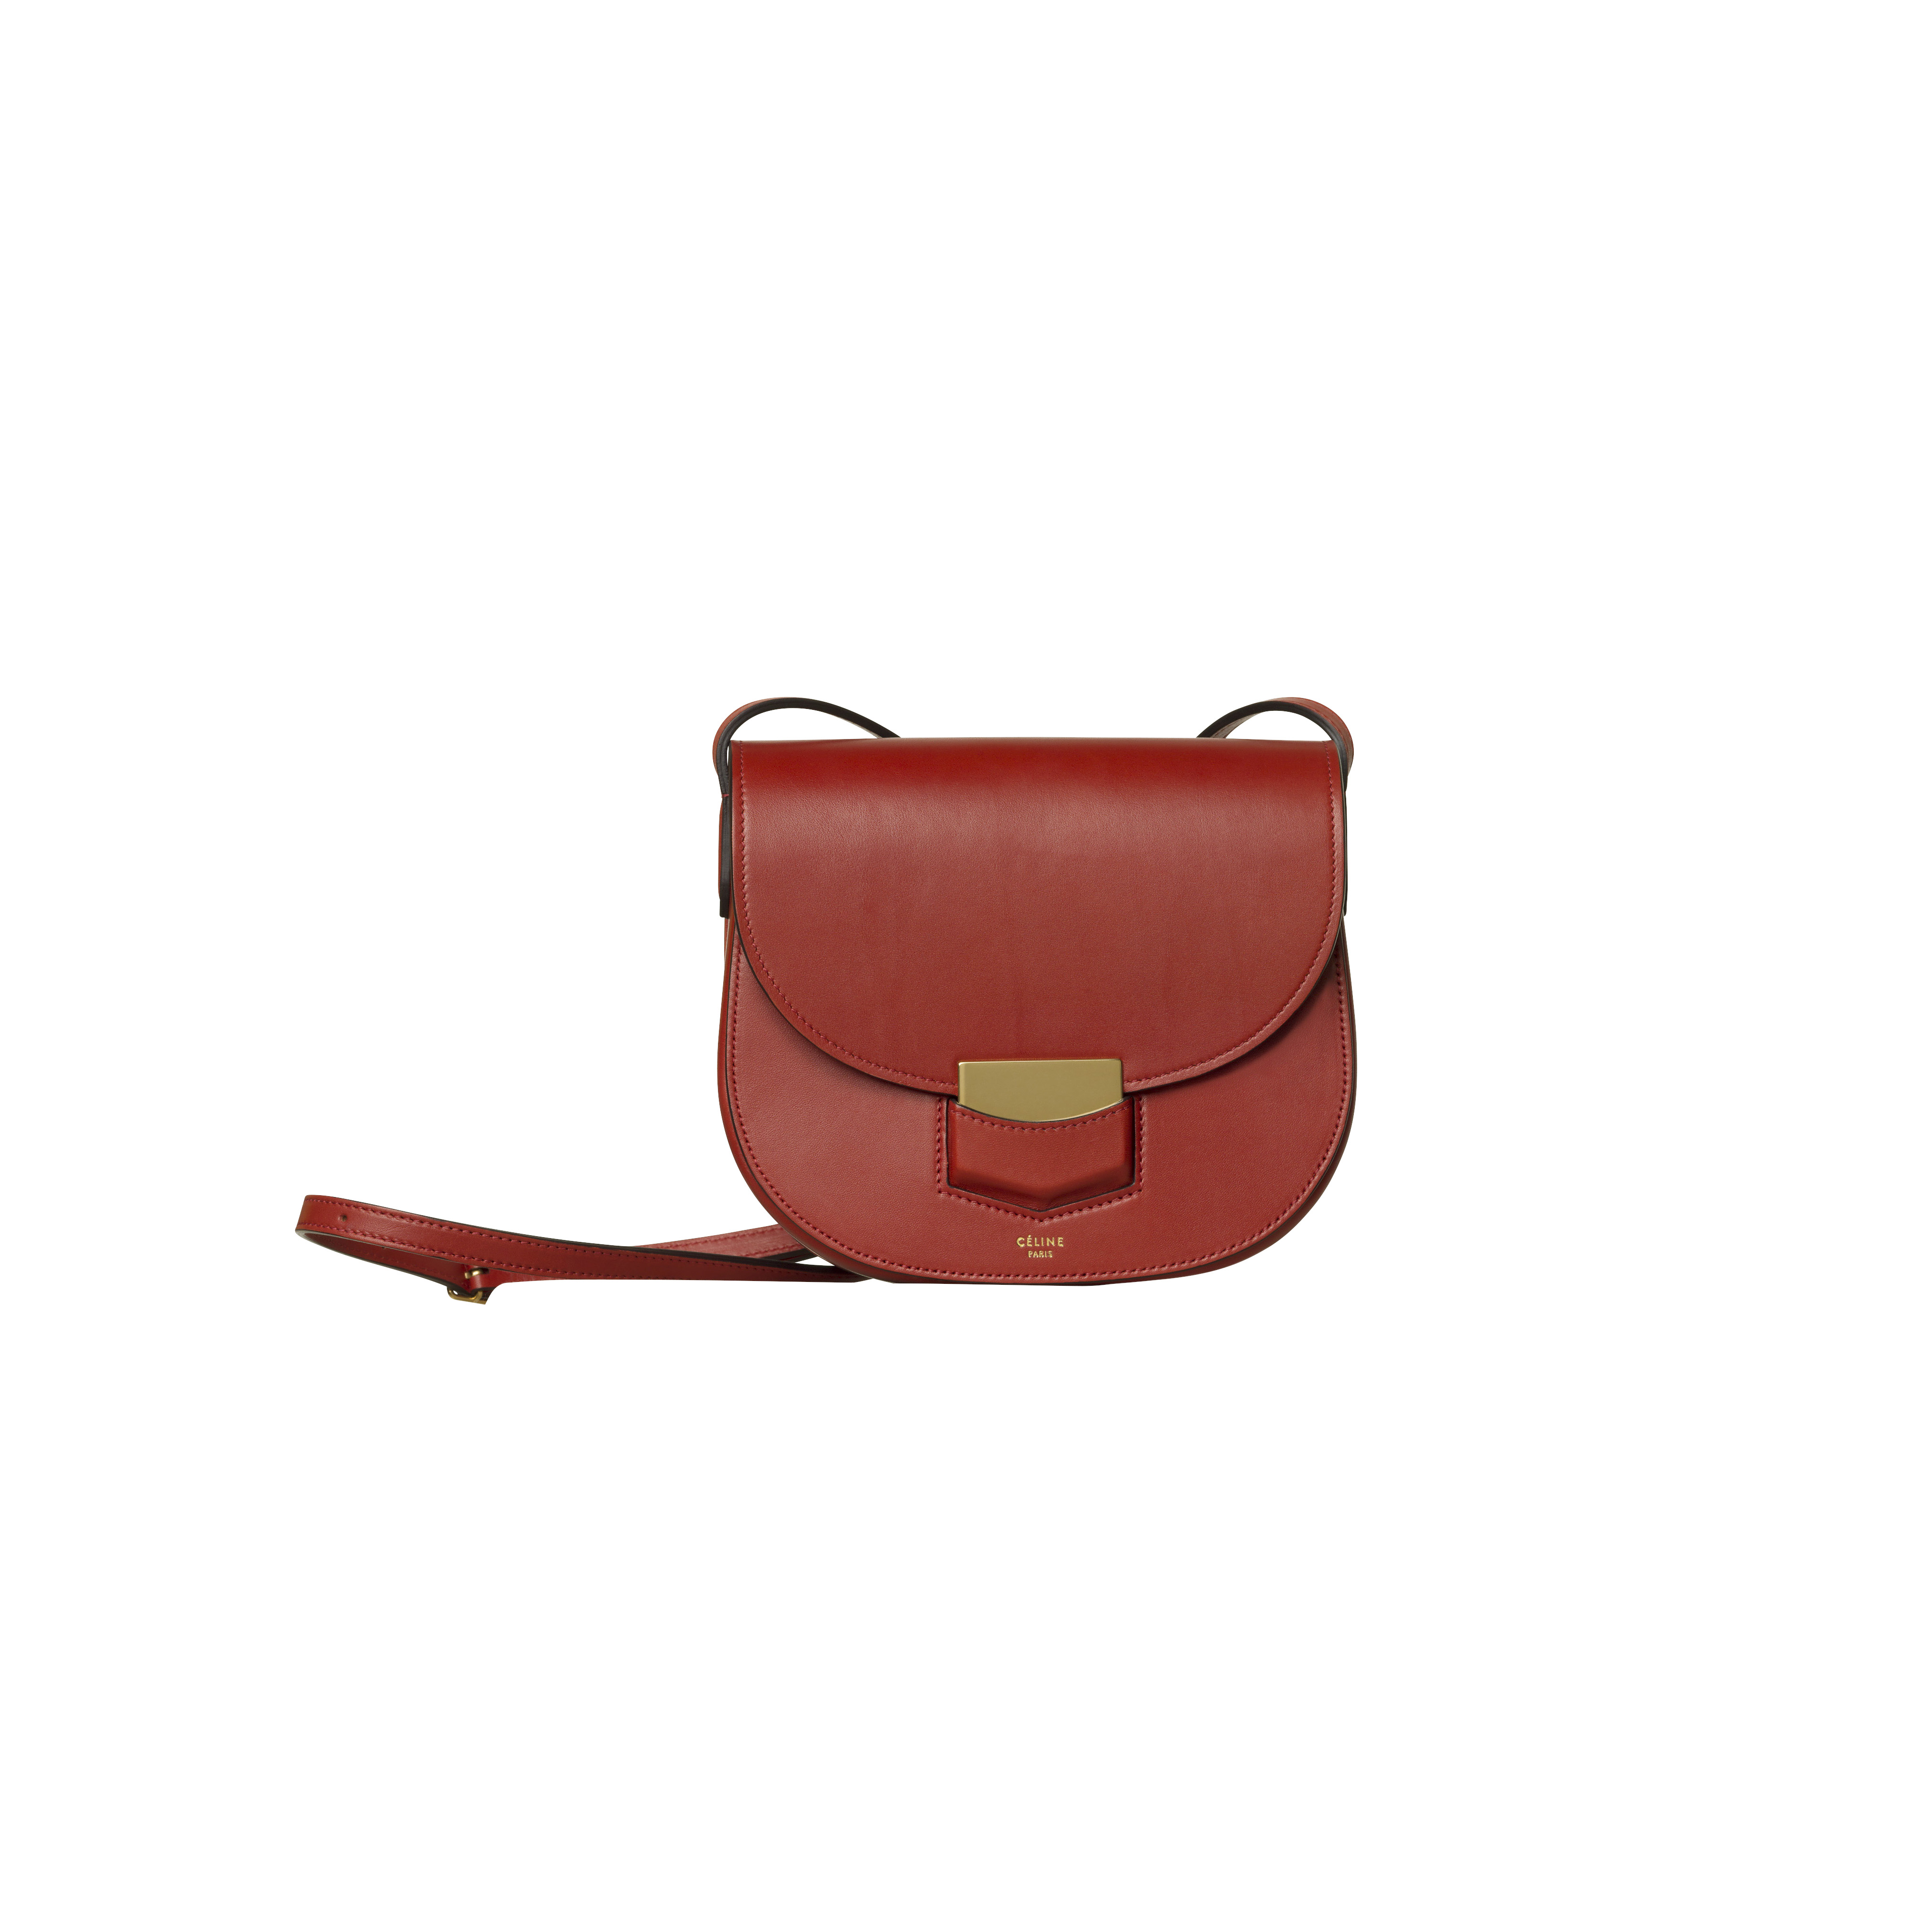 Small Trotteur Supersoft Calfskin in ruby, $2,250, Celine.com (Photo: Courtesy Celine).